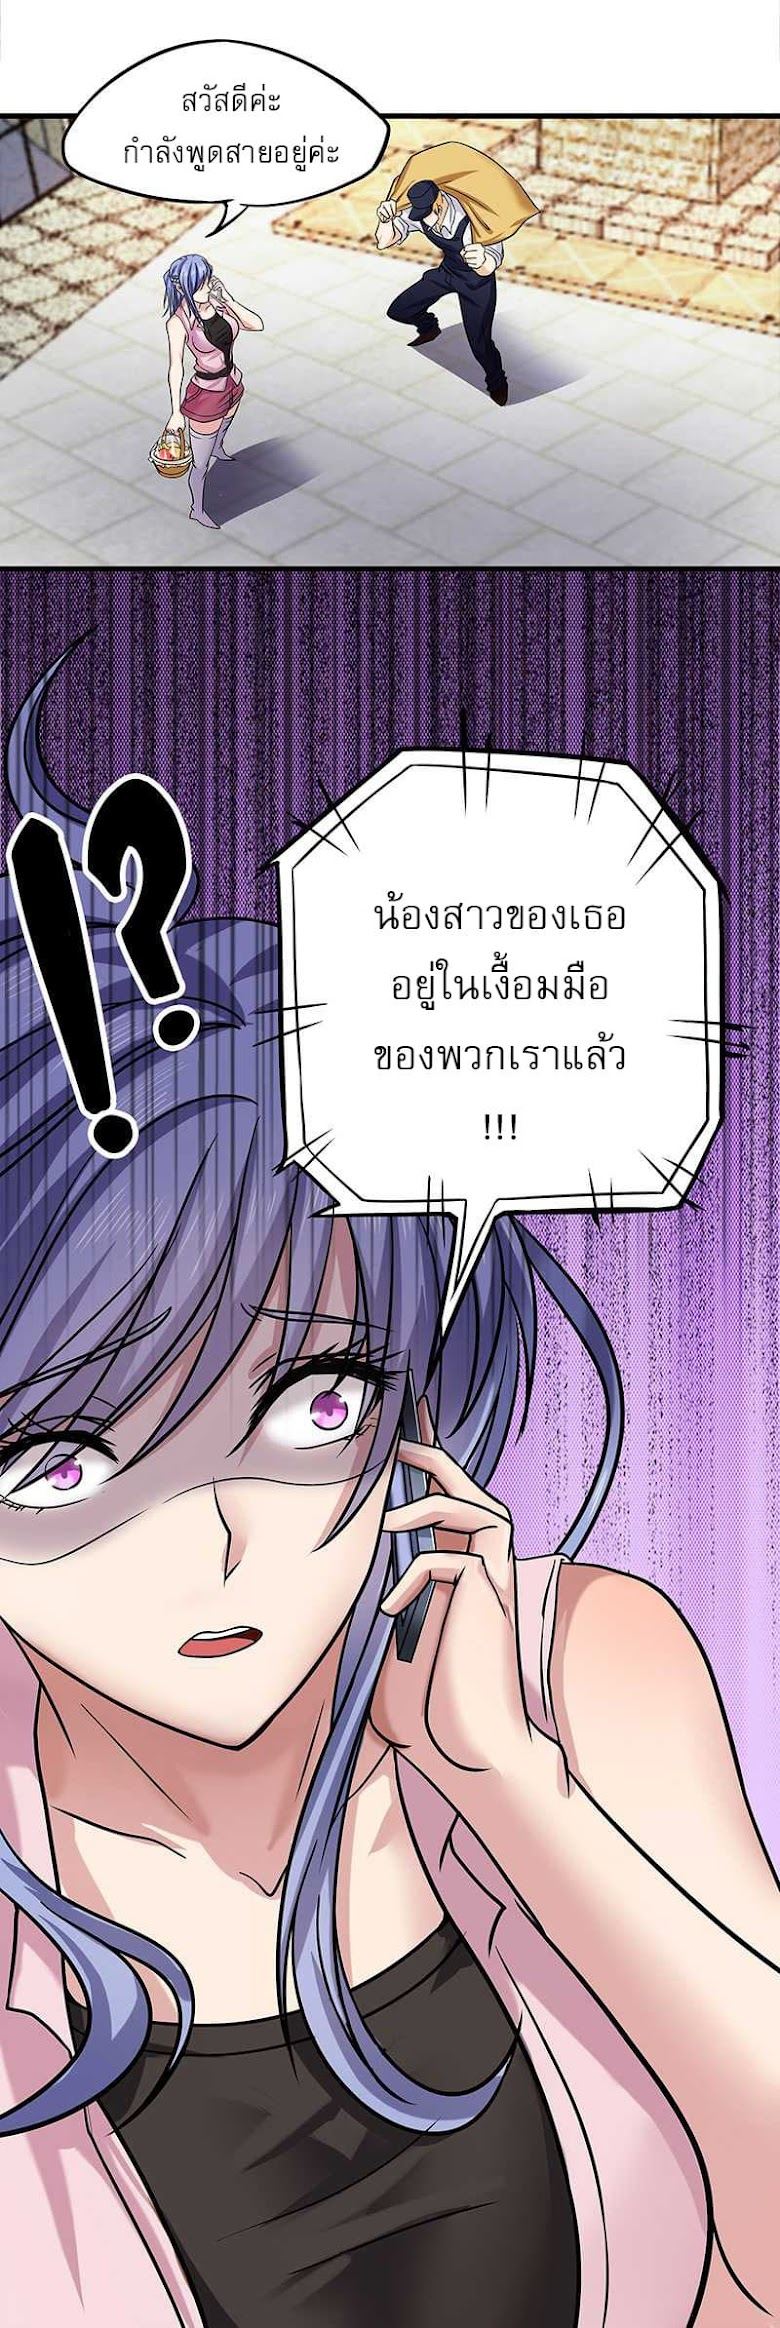 First Rate Master - หน้า 29